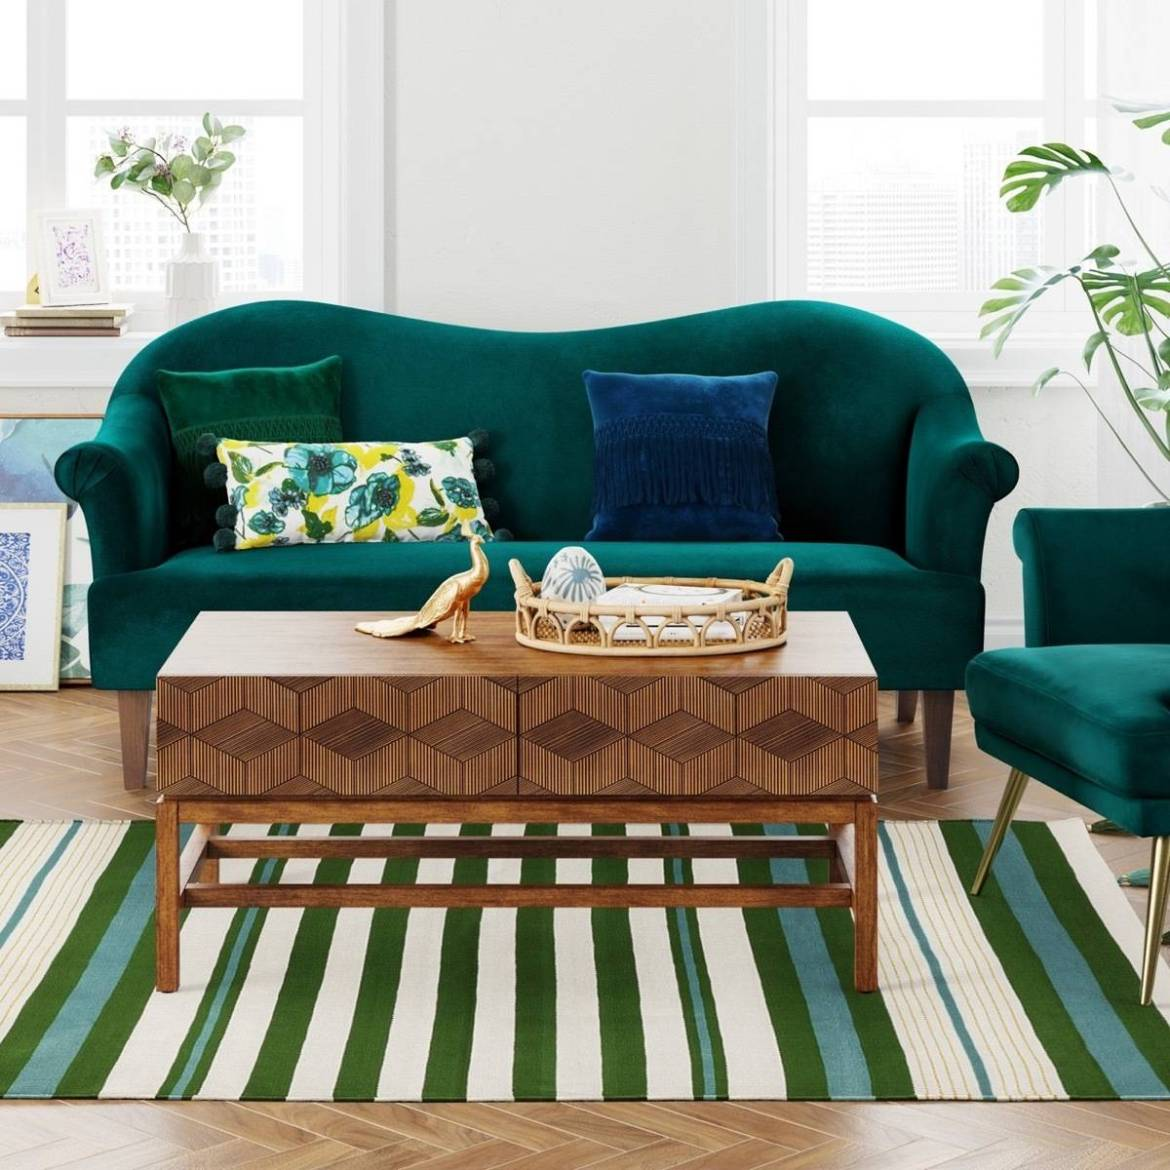 Teal green striped rug from Target